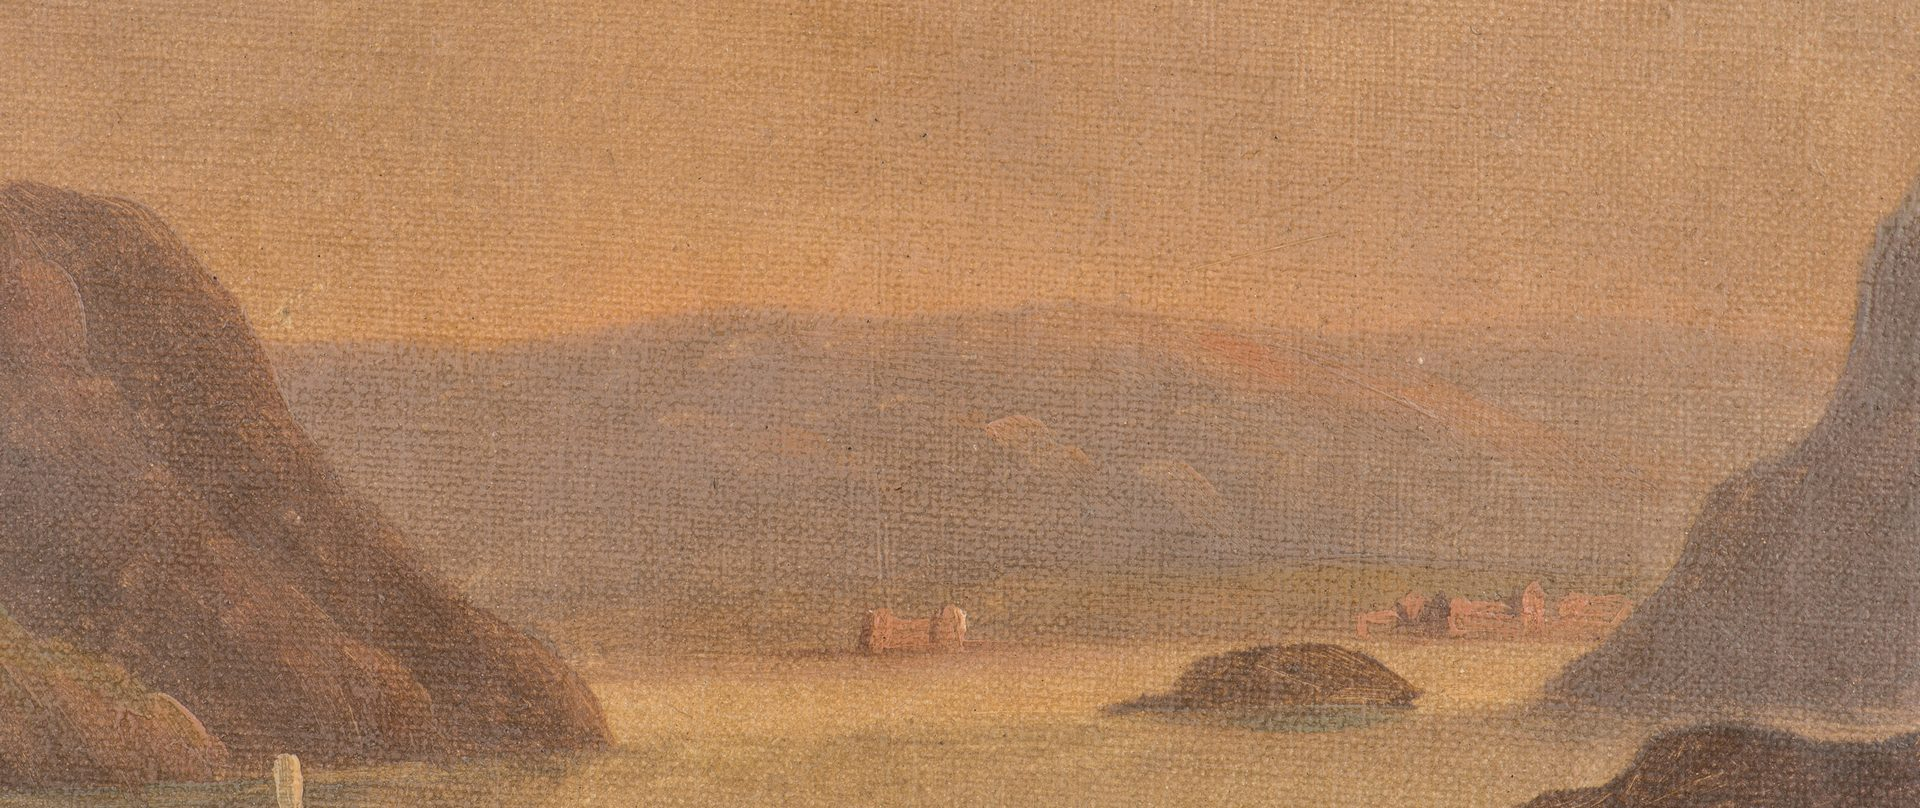 Lot 466: Hudson River landscape, manner of De Grailly